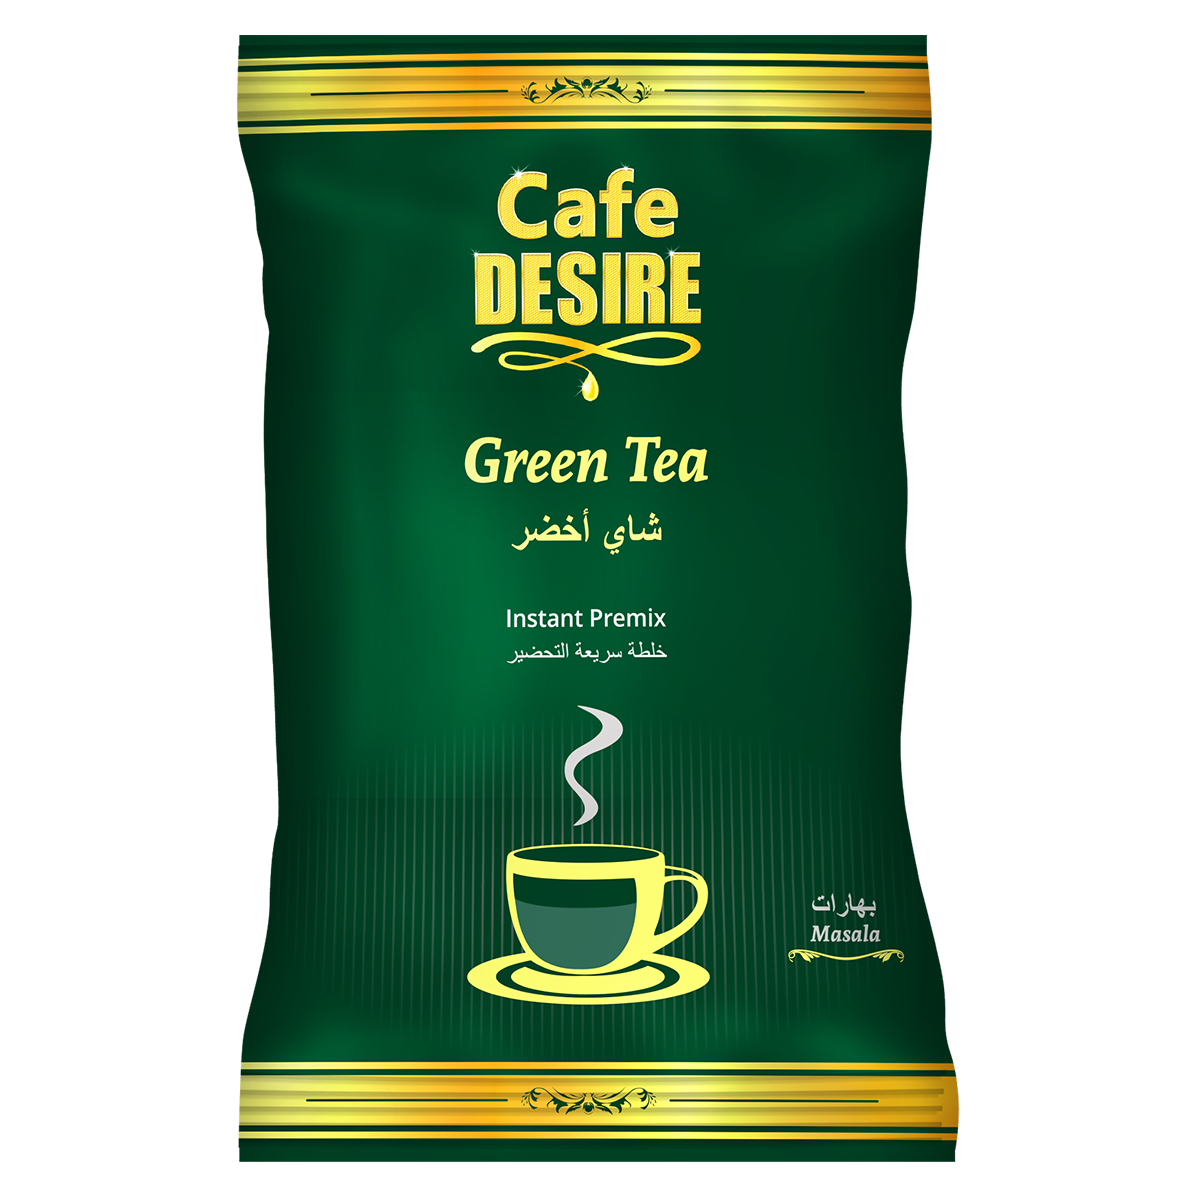 Instant Green Tea Premix (500g) | Masala Flavoured | Makes 100 Cups | For Manual Use - Just add Hot Water | Suitable for all Vending Machines